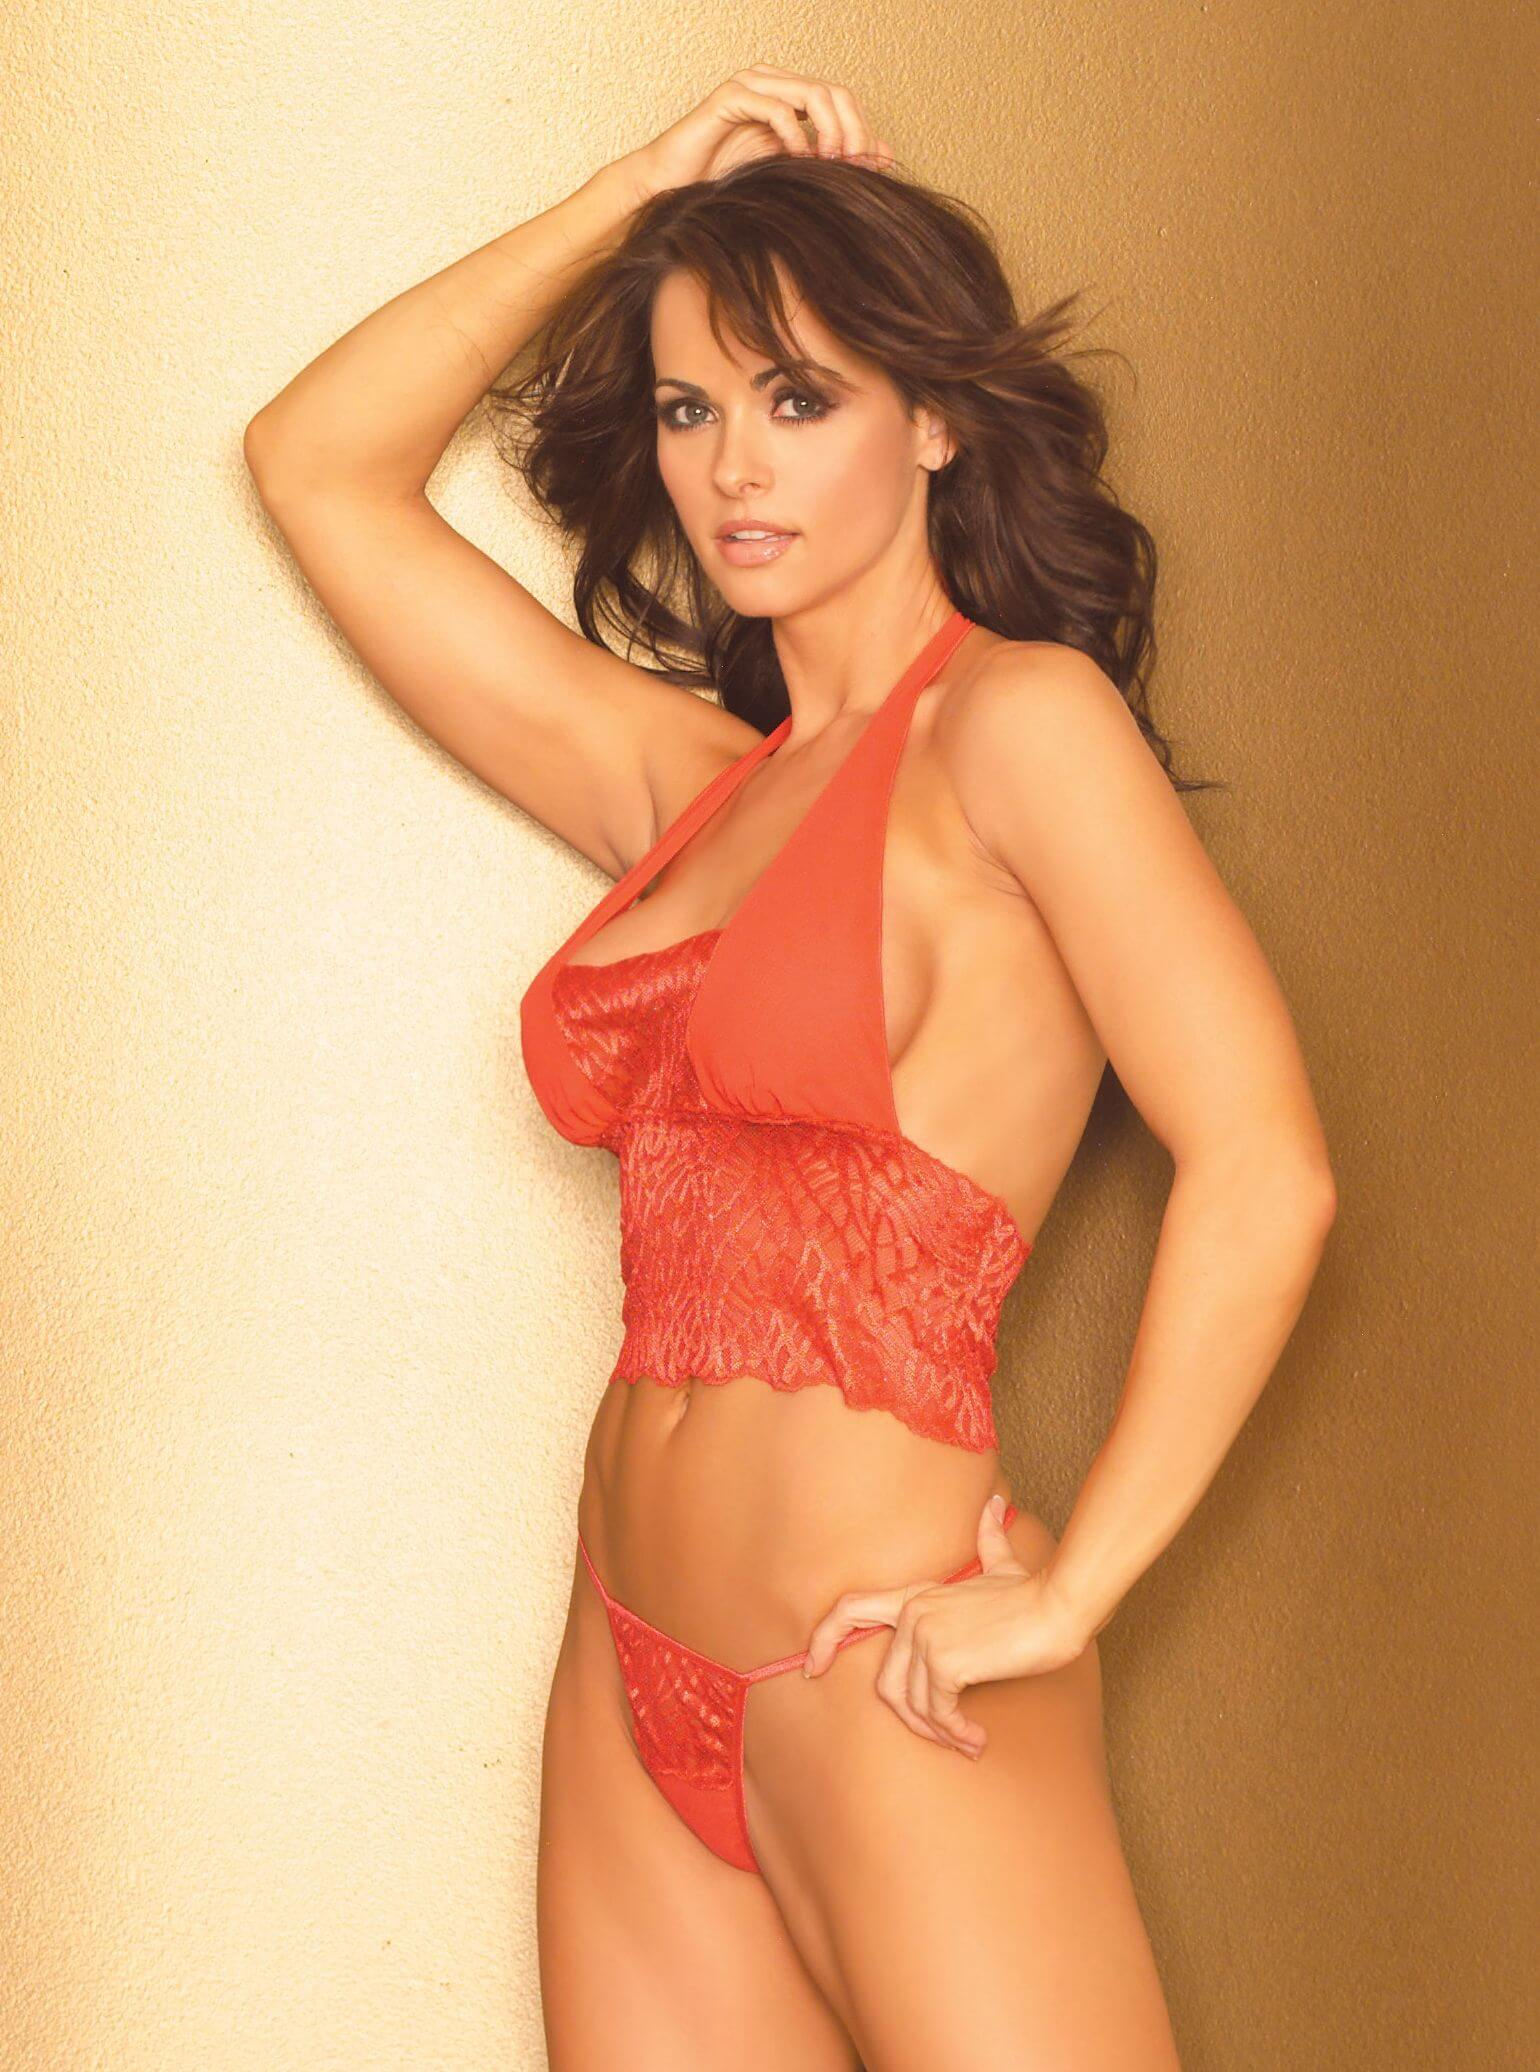 karen mcdougal sexy picture